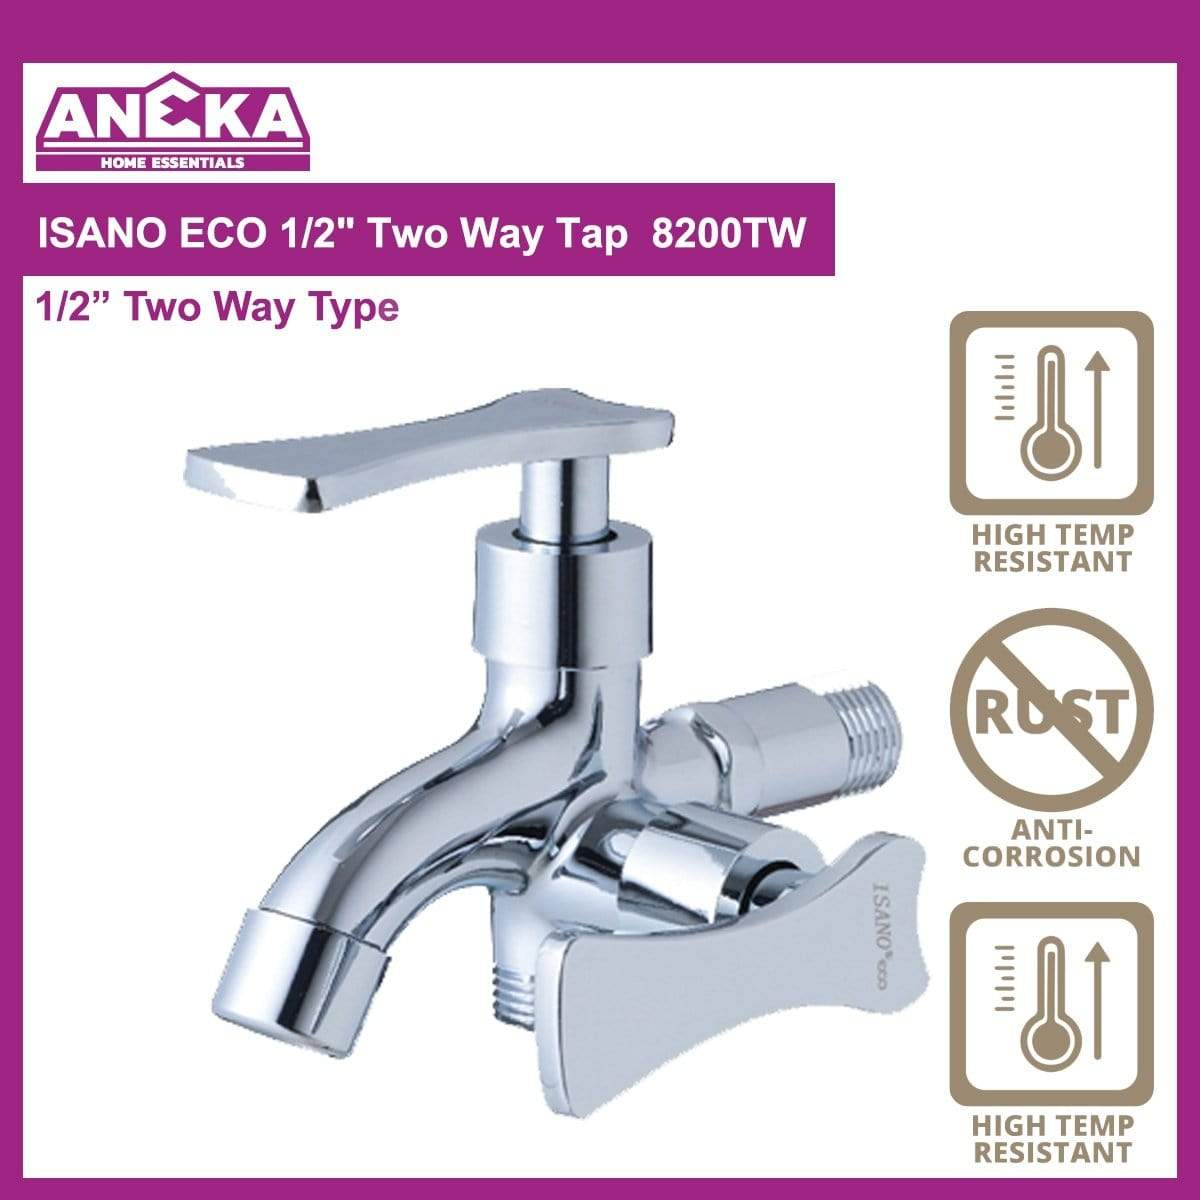 "ISANO ECO 1/2"" Two Way Tap 8200TW"